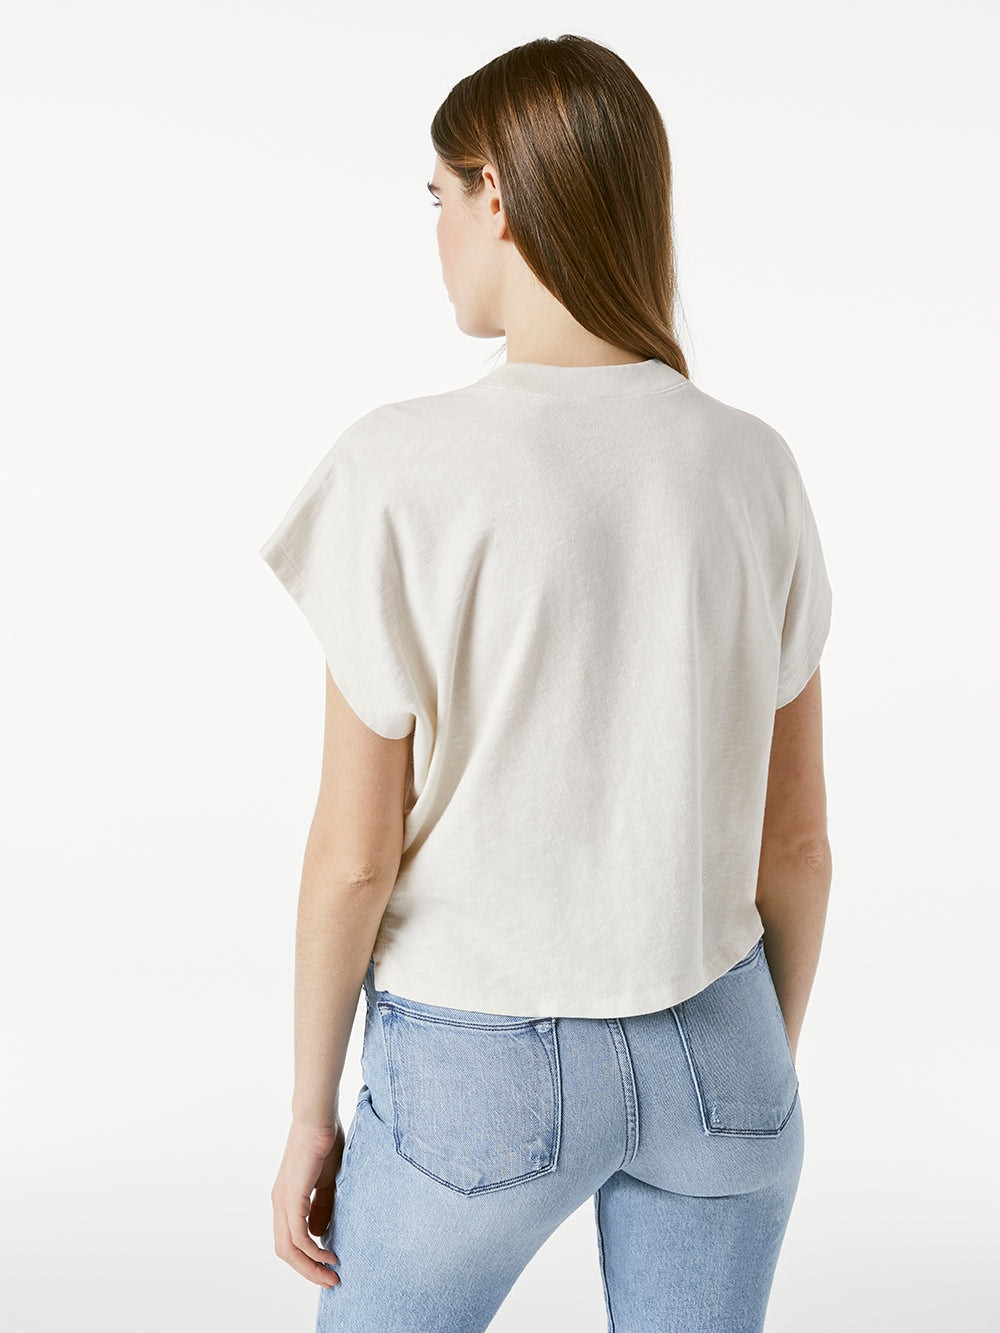 tee back view 2 alt:hover